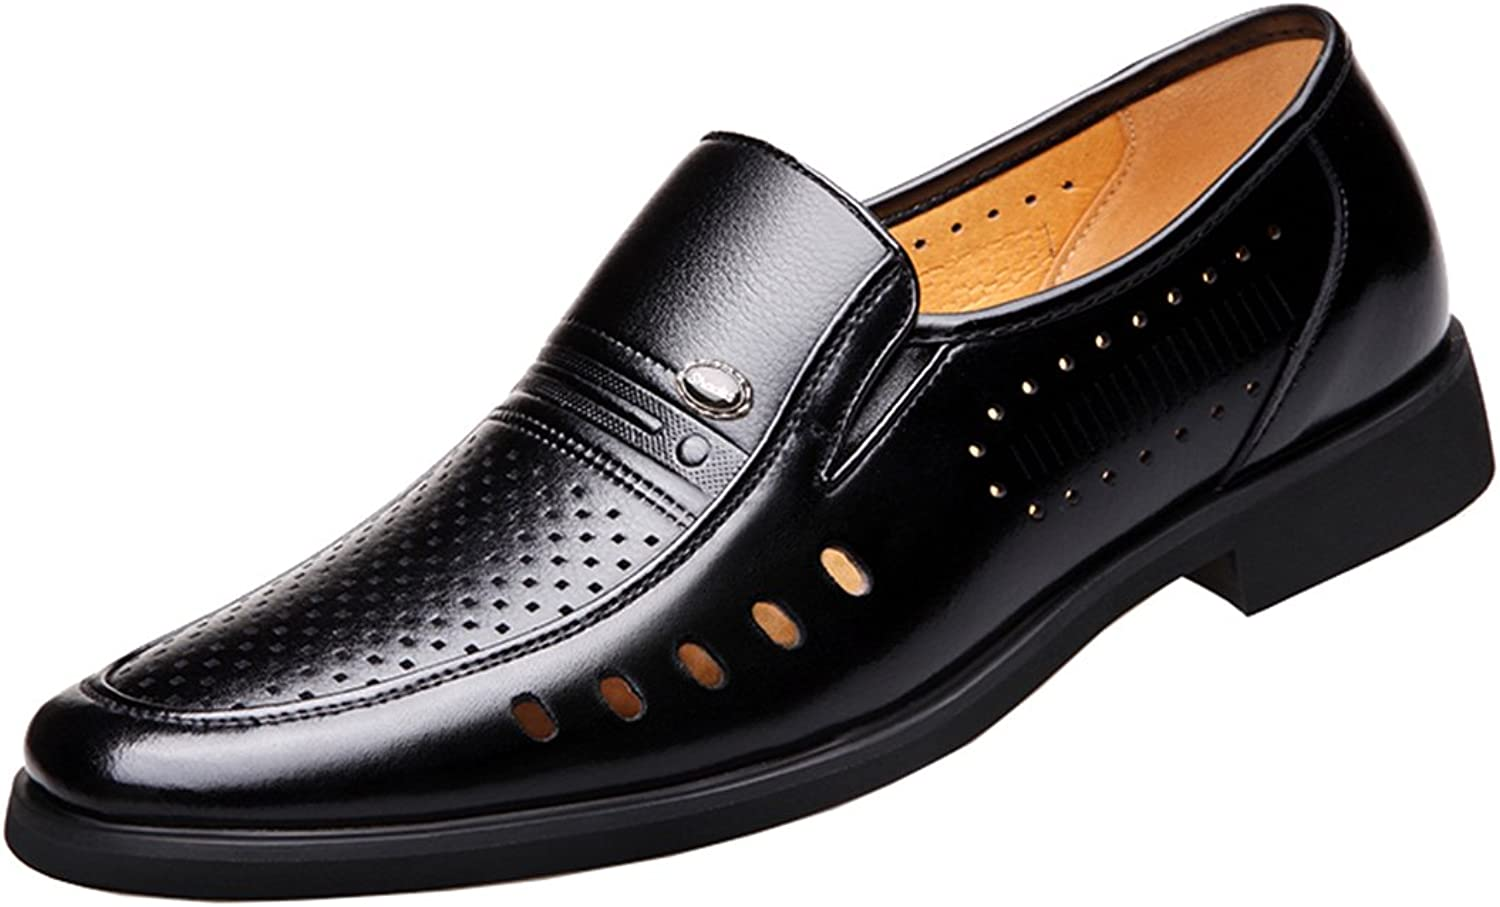 Seaoeey Men's Business Oxford Dress Casual Leather shoes Slip-on Loafers